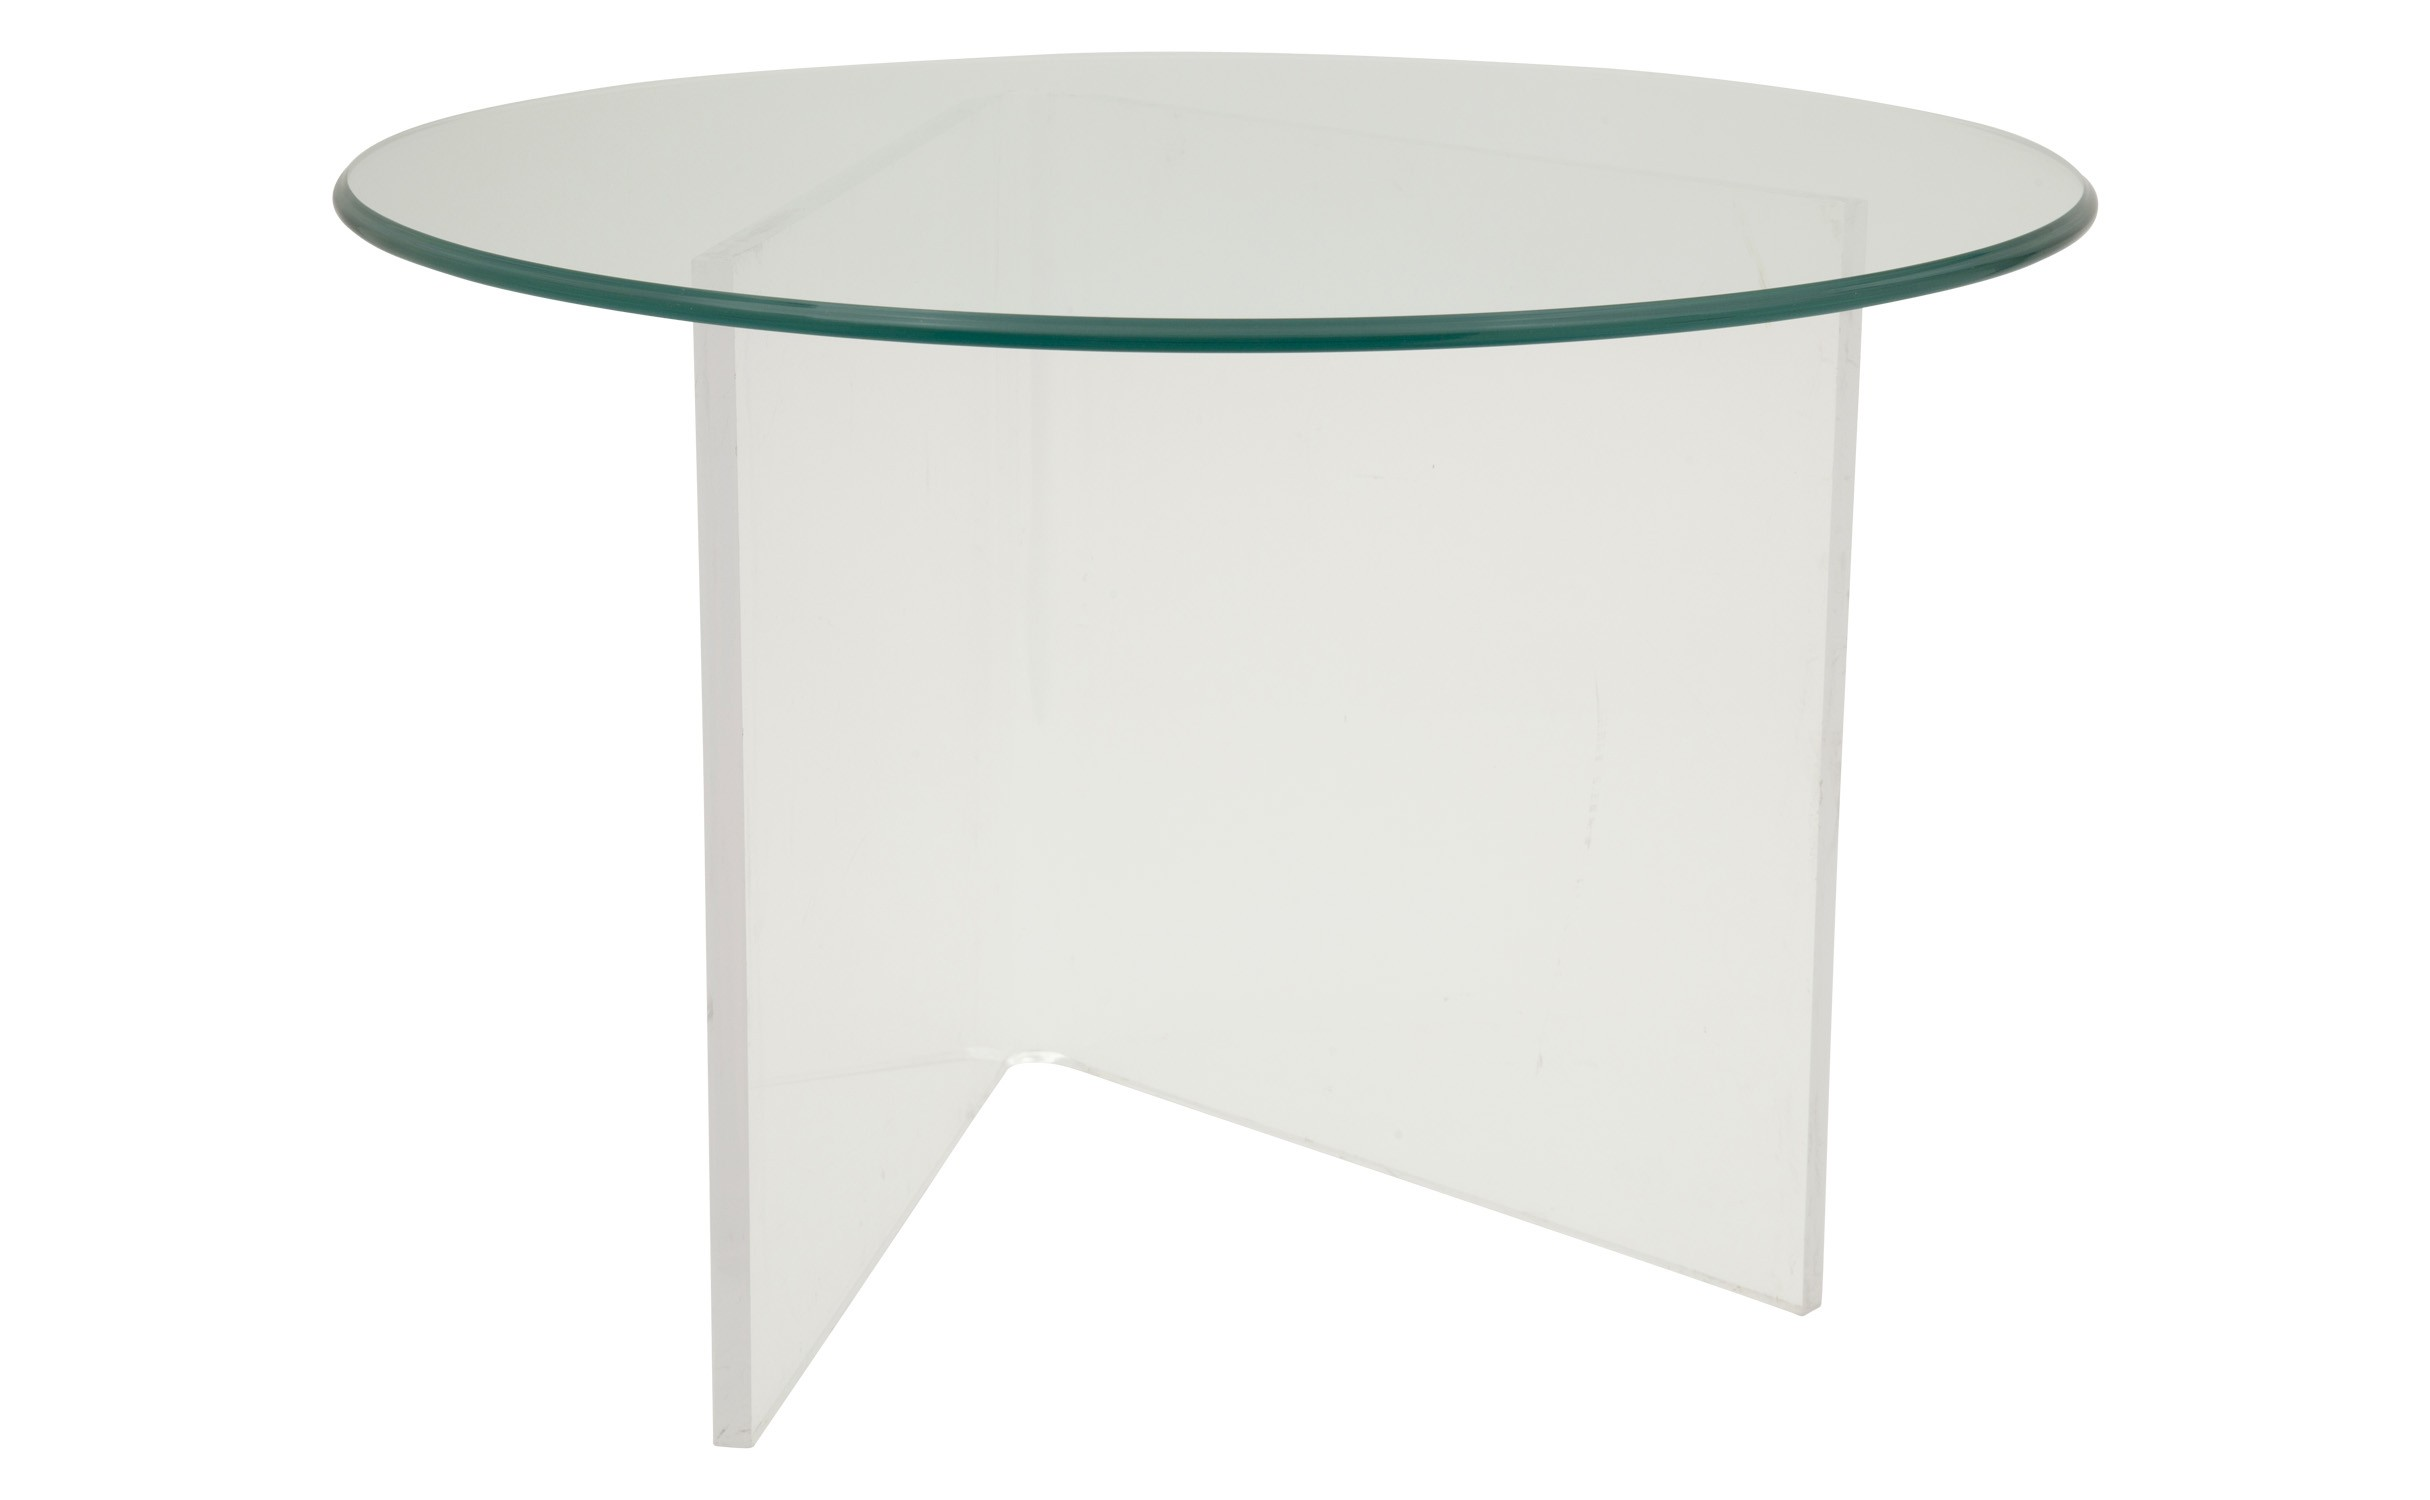 best round lucite coffee table with small accent tableputiloan oval pier coupons mirrored bedside target living room tables white pedestal side porcelain lamp keter ice cooler